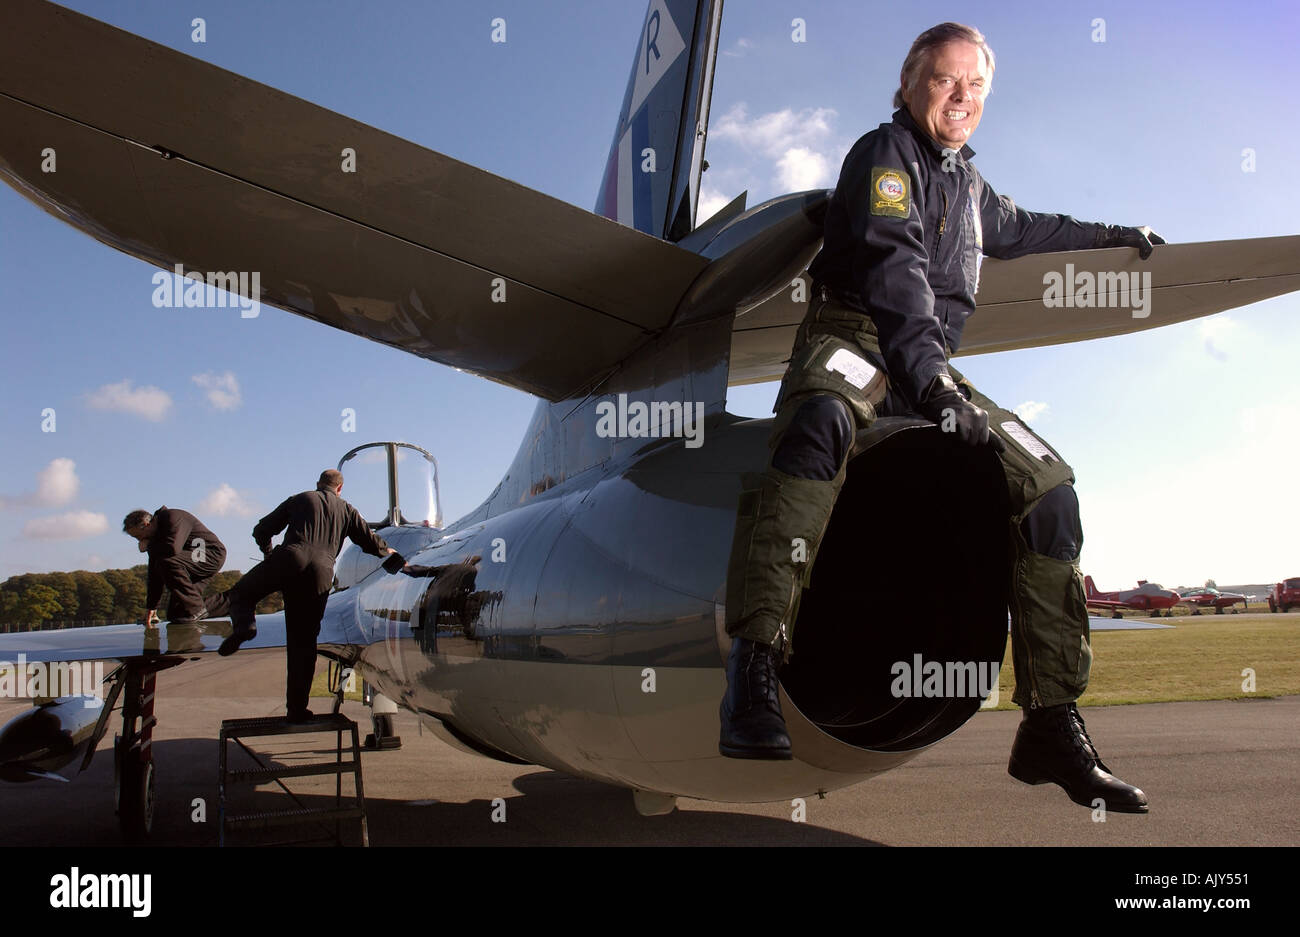 JET PILOT BARRIE PRESCOTT WHO IS A SHAREHOLDER IN A HUNTER TZ RAF TRAINER PICTURED AT KEMBLE GLOUCESTERSHIRE UK - Stock Image